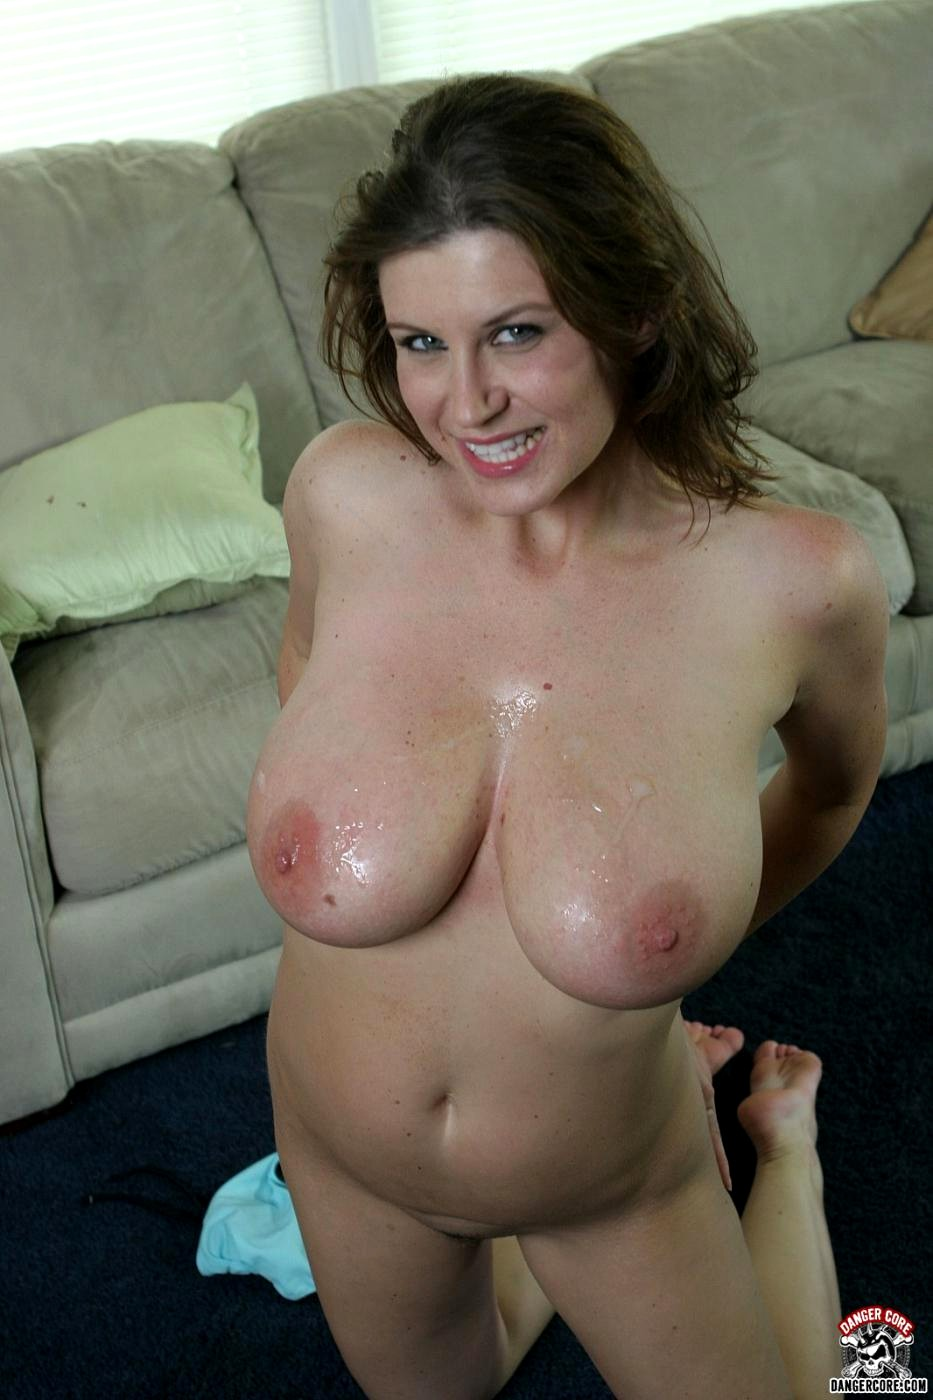 Babe Today Danger Core Sara Stone Uncensored Busty Hd Vids -9274